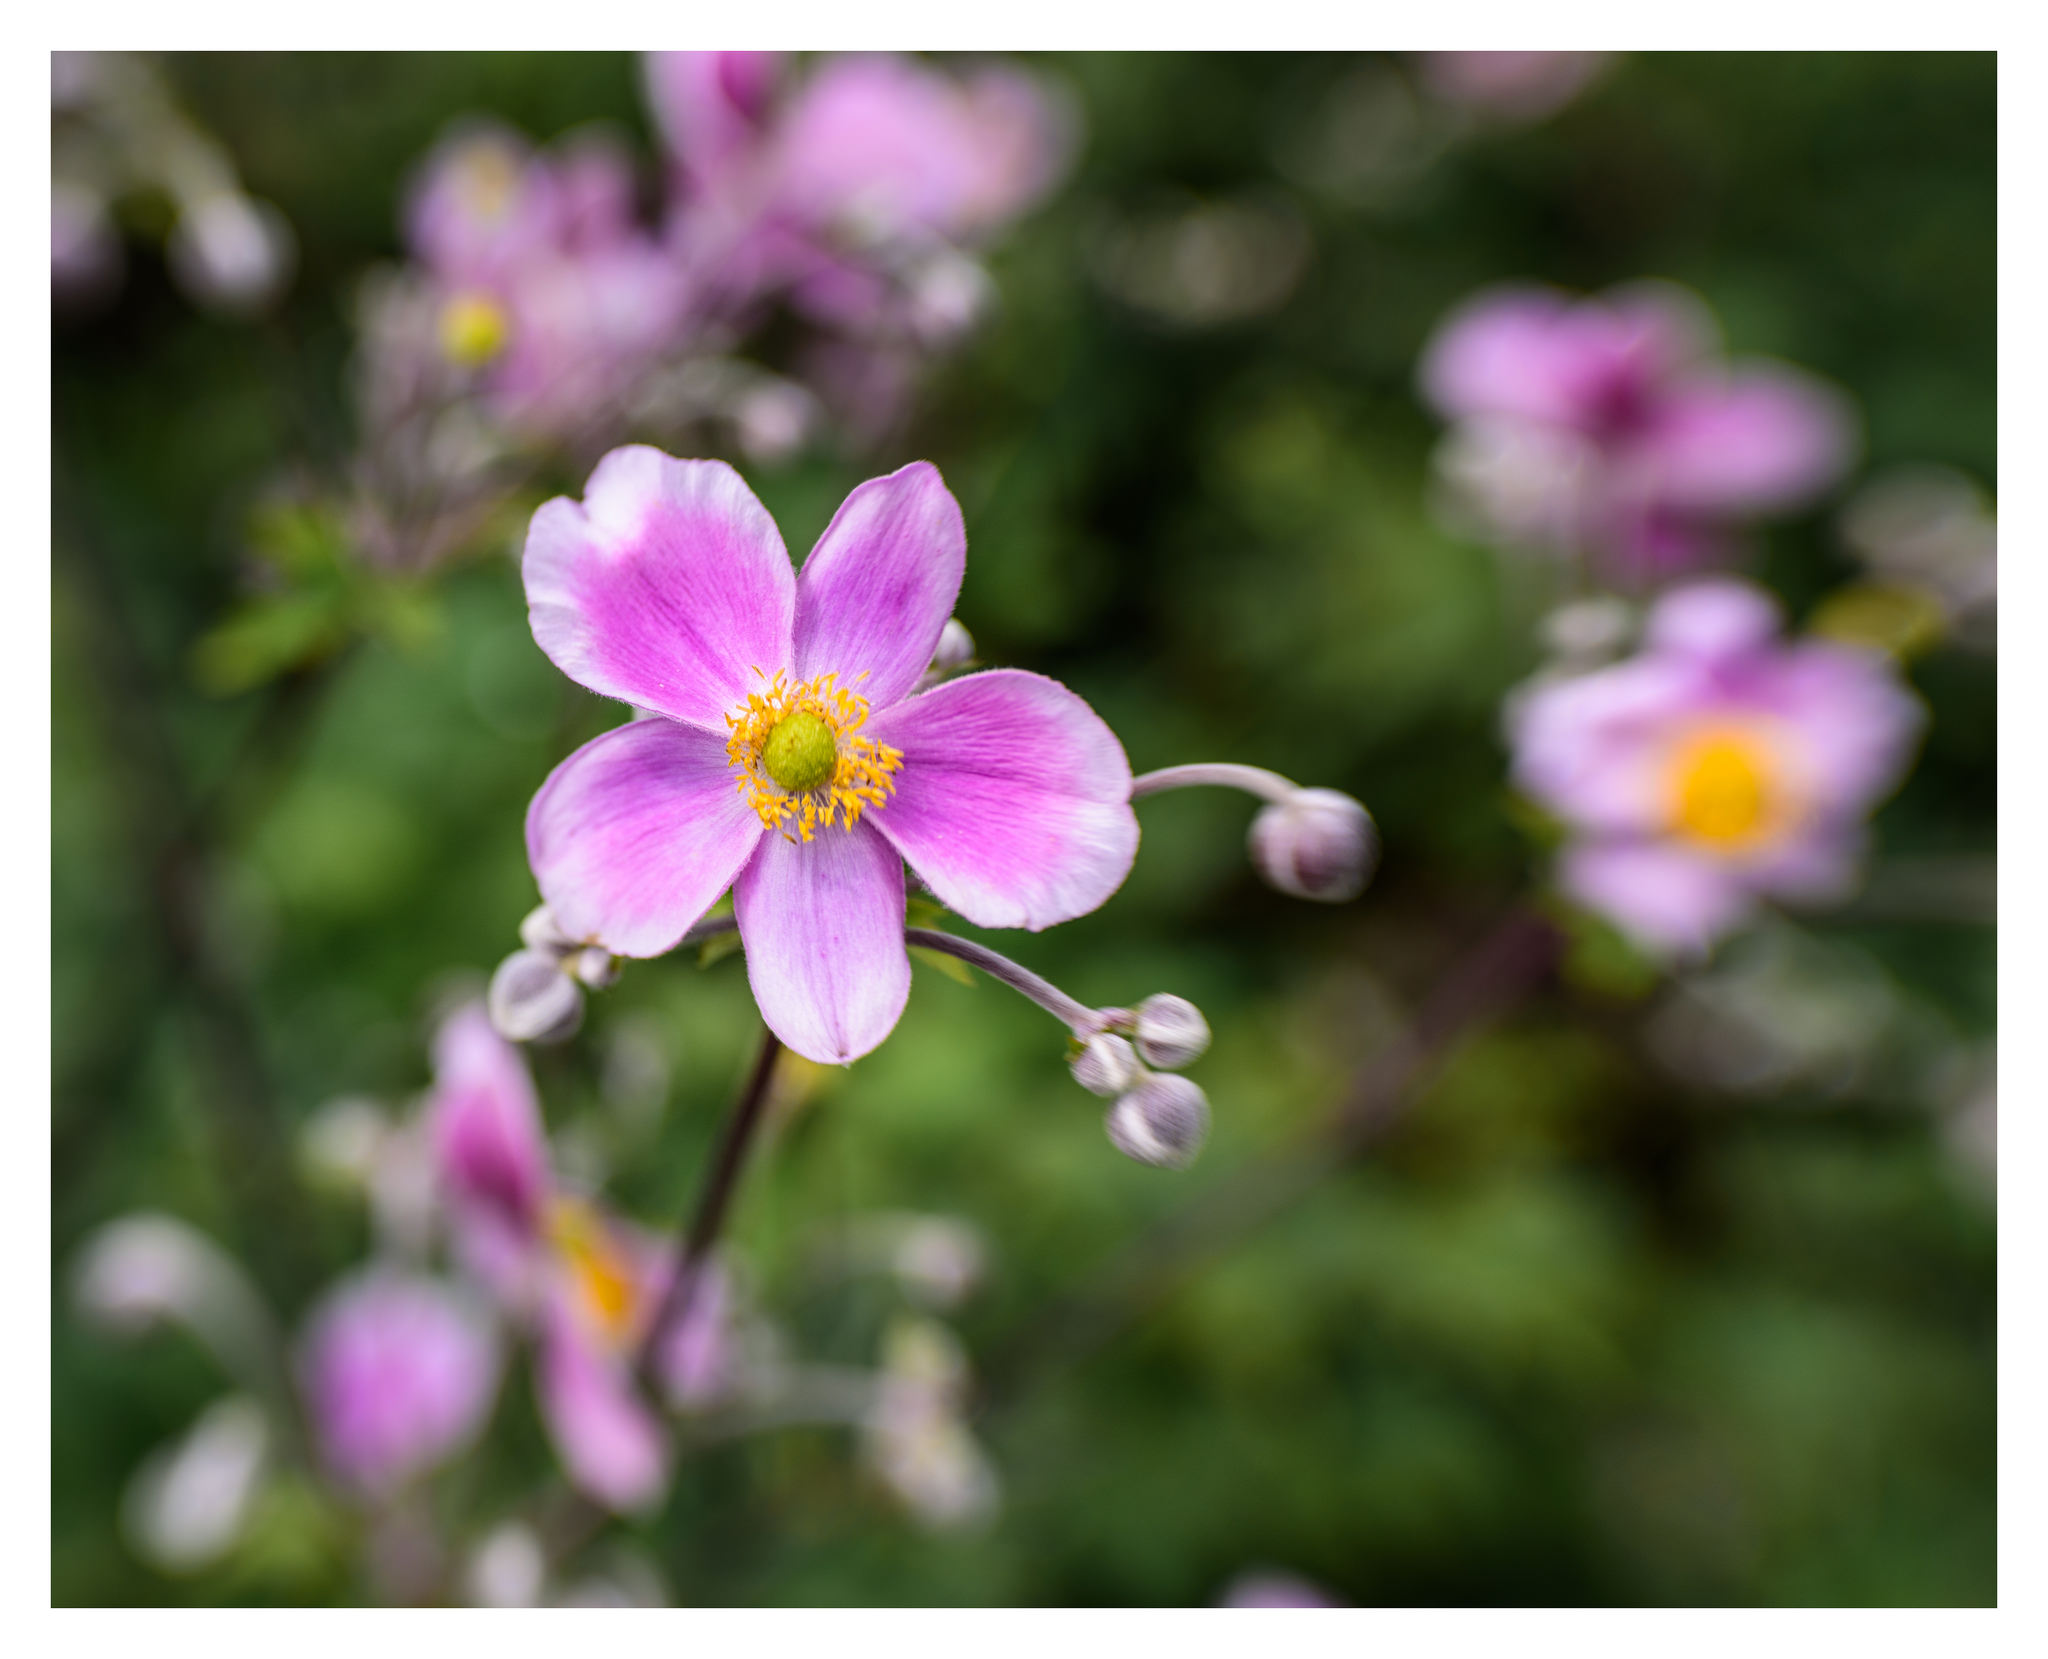 Unknown Flowers at Cox Arboretum MetroPark - Nikon D750 w/Lensbaby Sol 45 lens